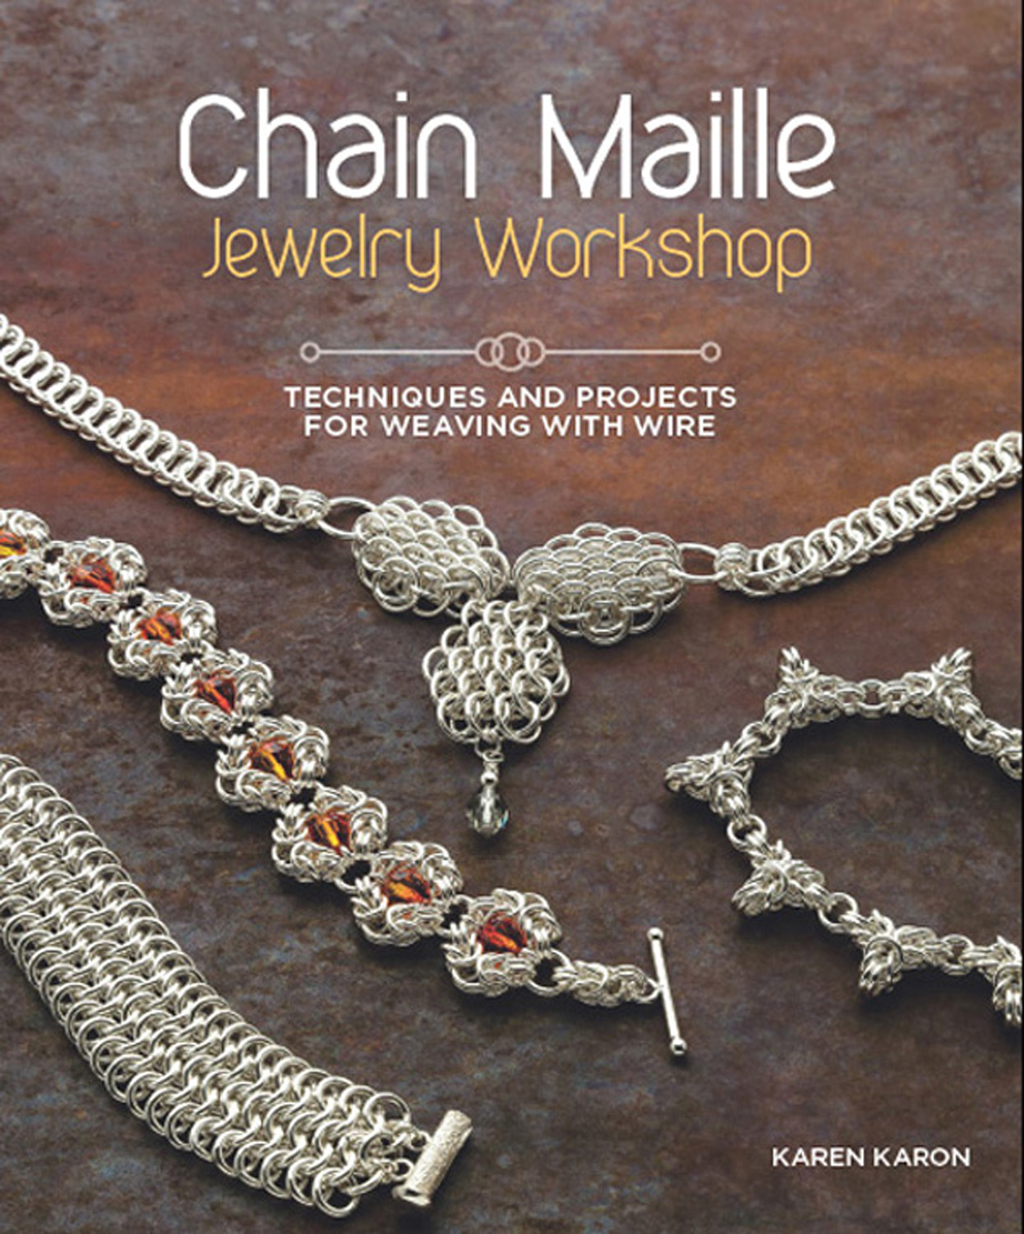 Chain Maille Jewelry Workshop Techniques and Projects for Weaving With Wire